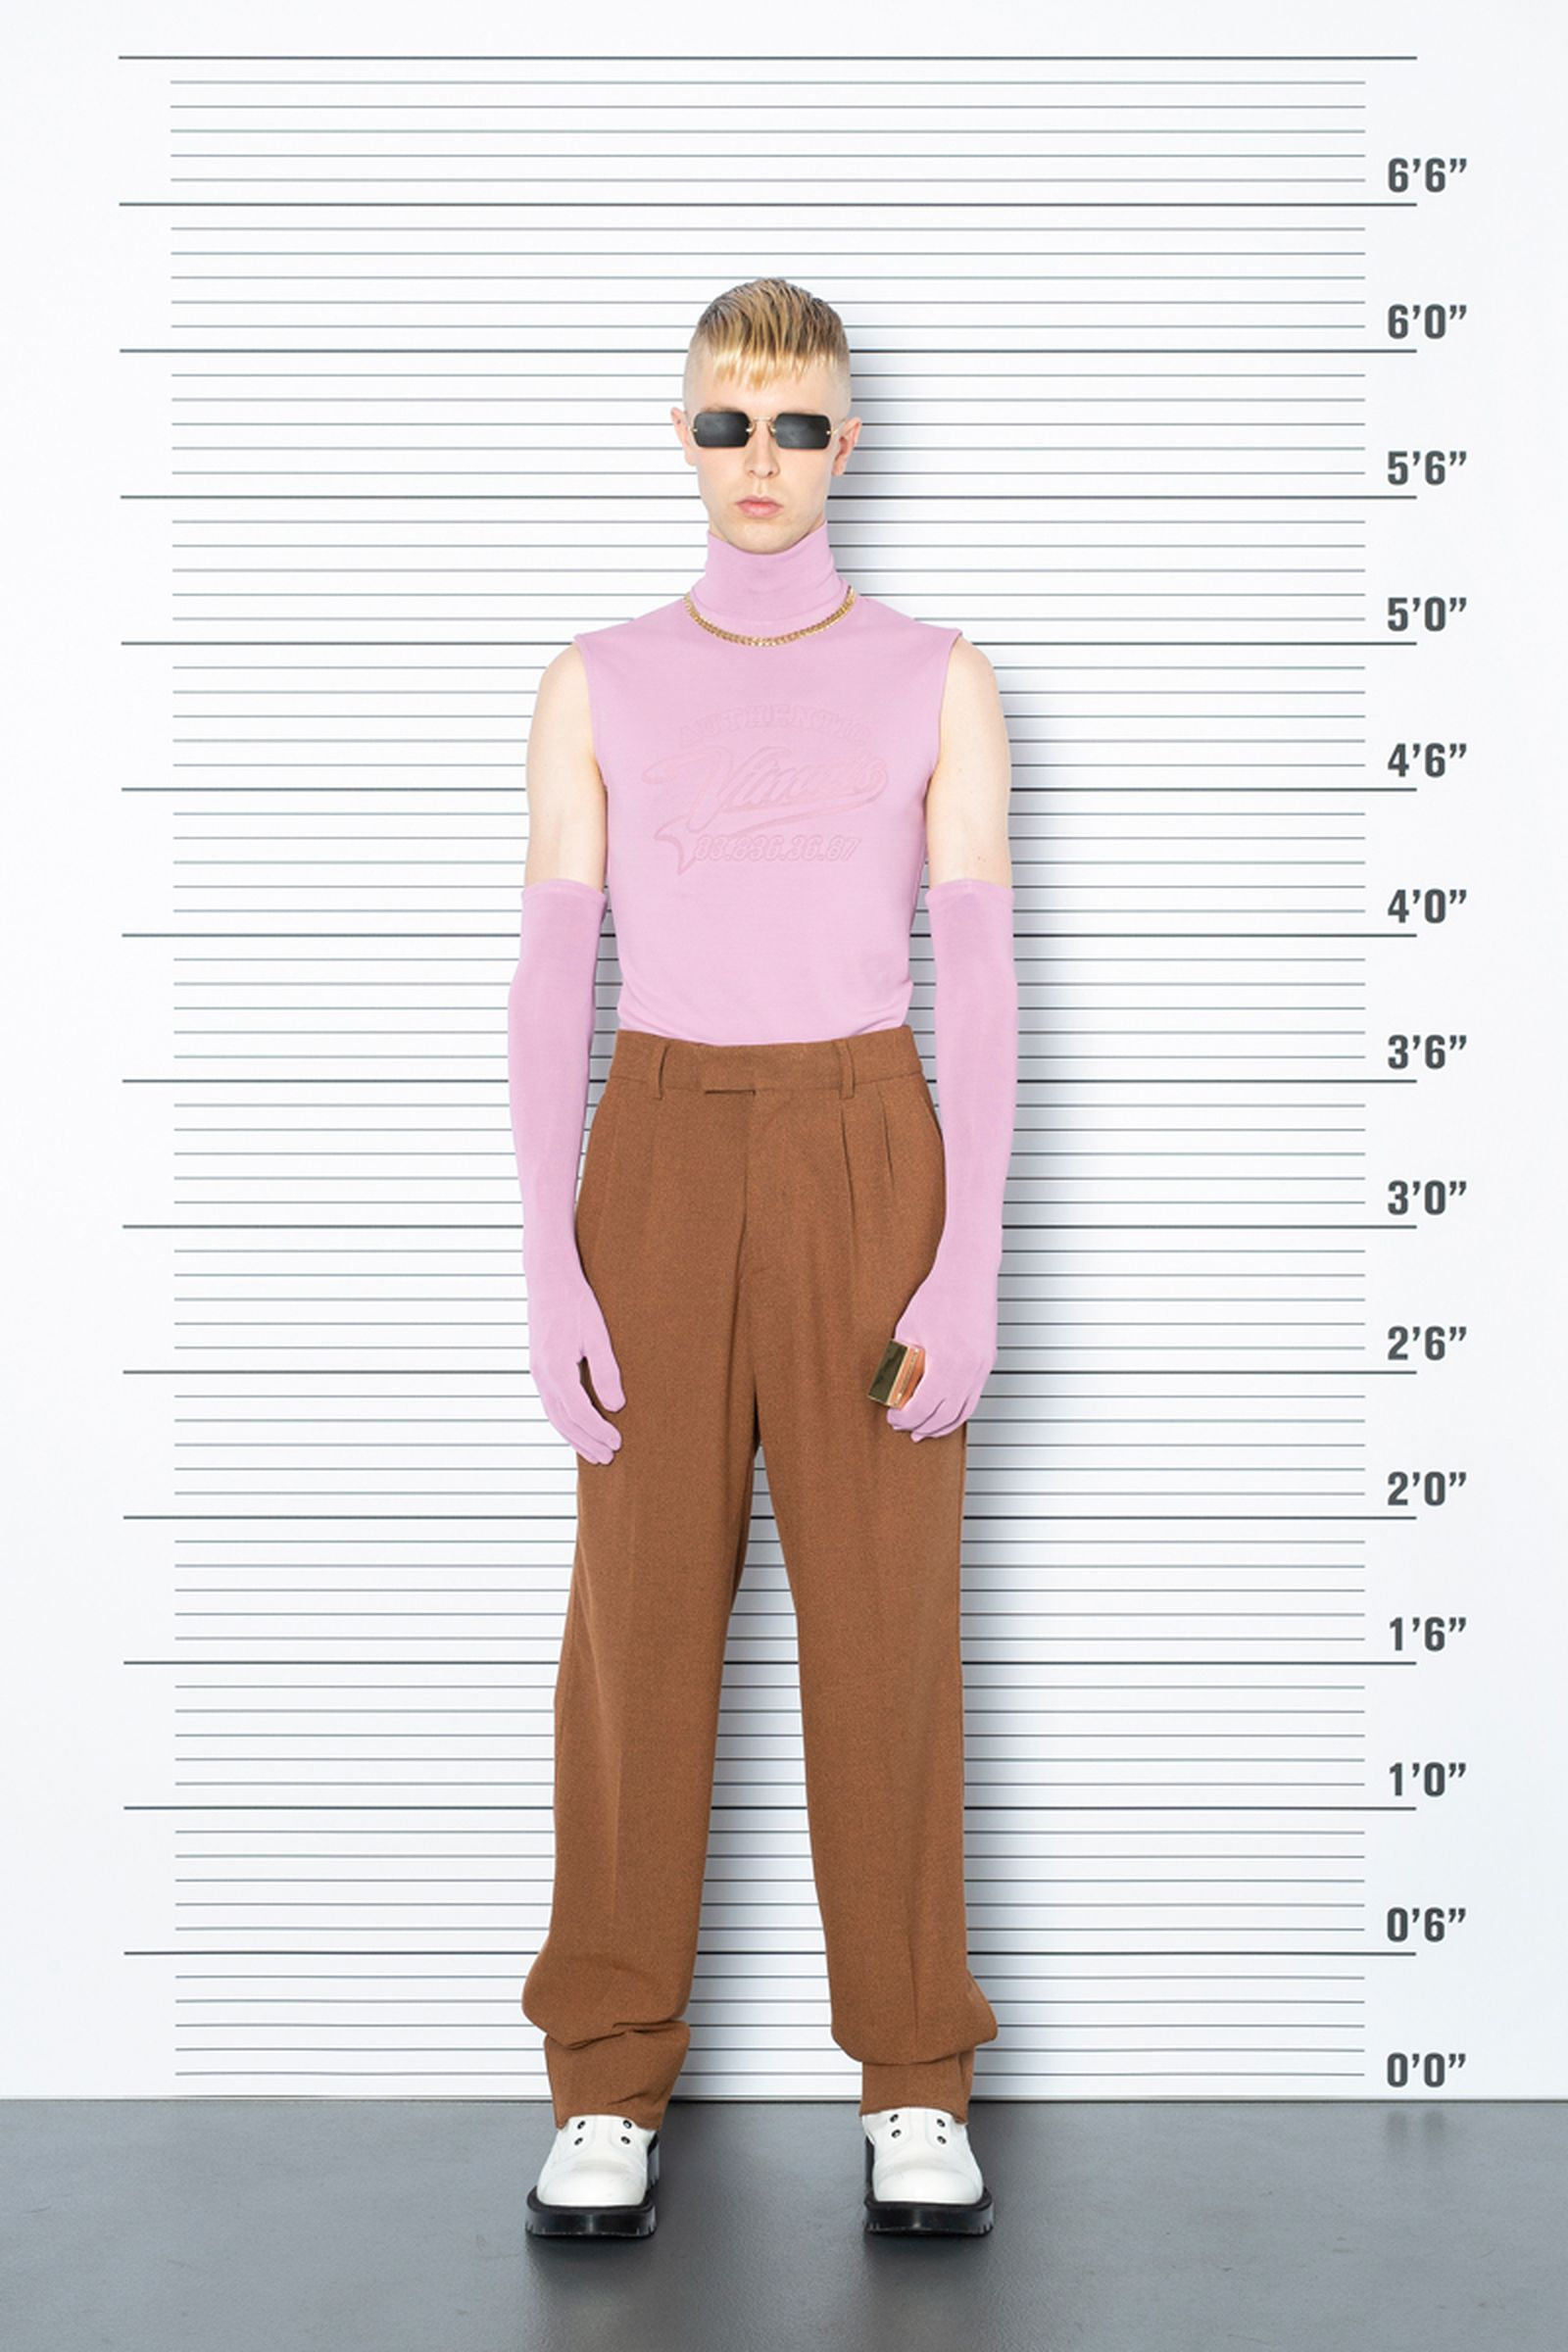 vetements-vtmnts-ss22-collection-lookbook- (8)